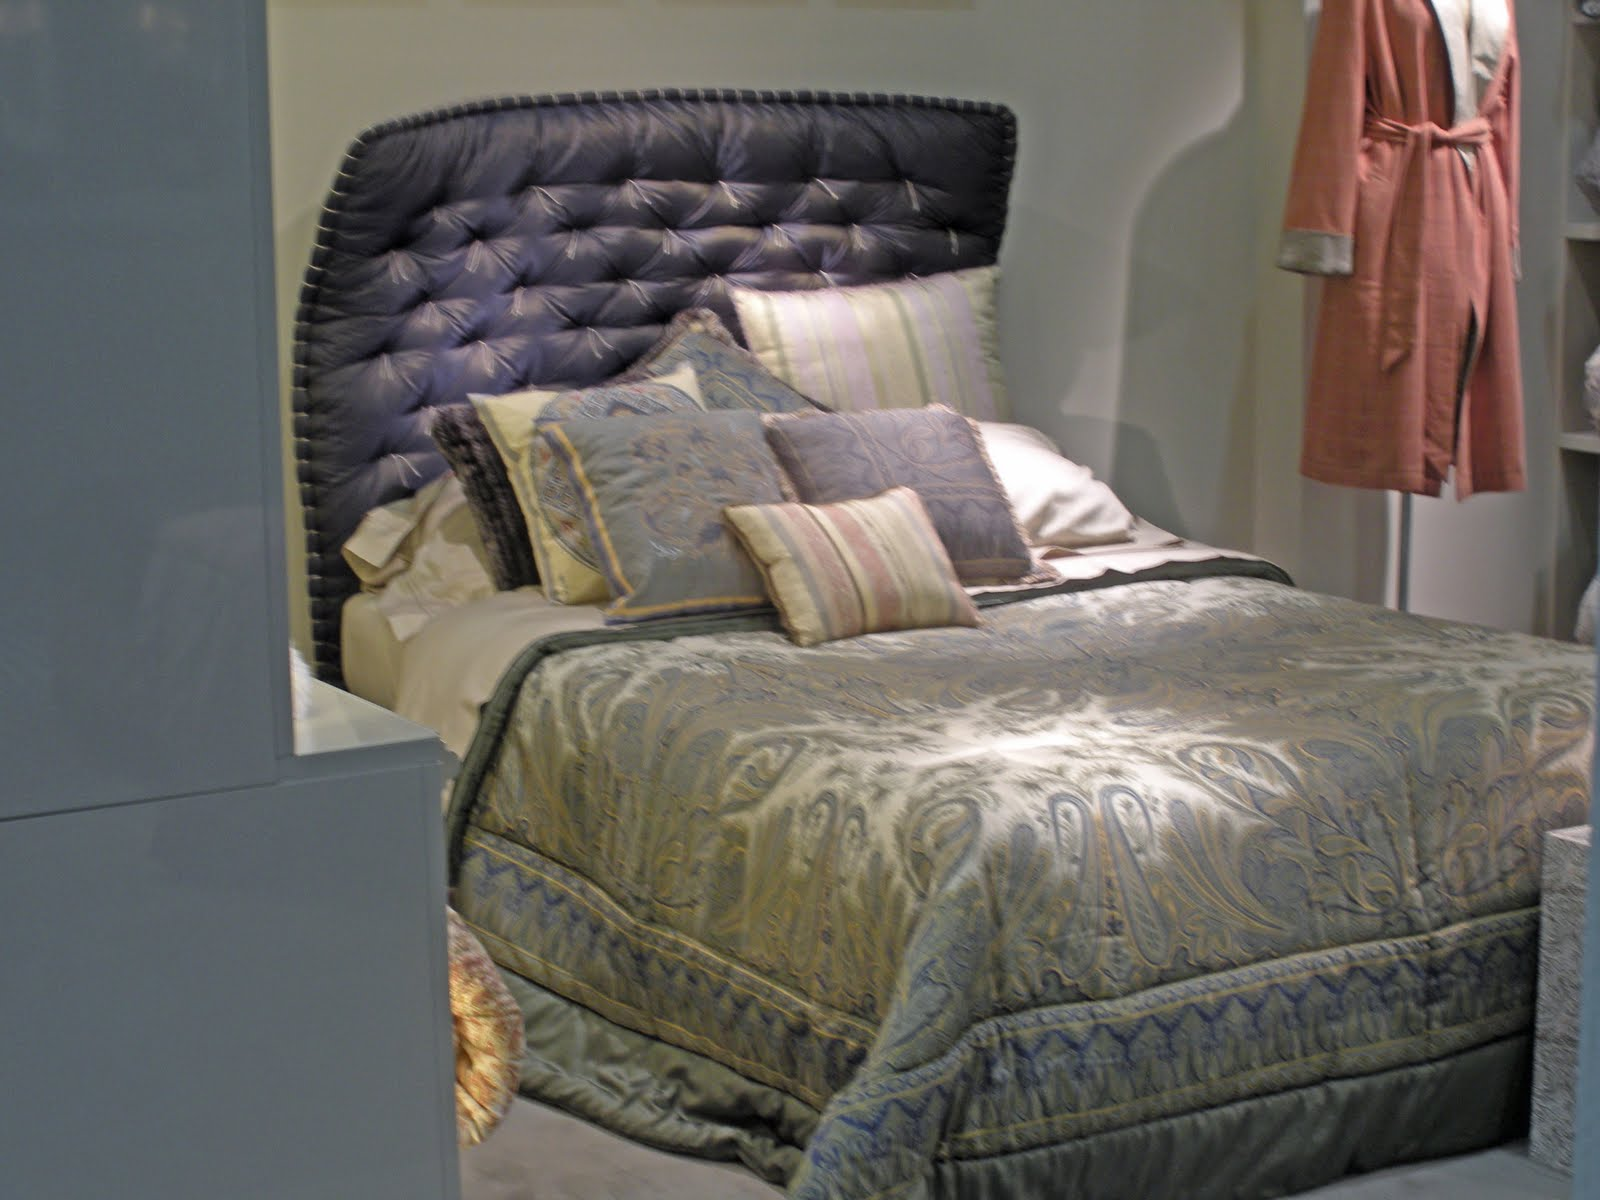 Beadboard upcountry maison object spring 2011 - Kenzo maison pour yves delorme ...